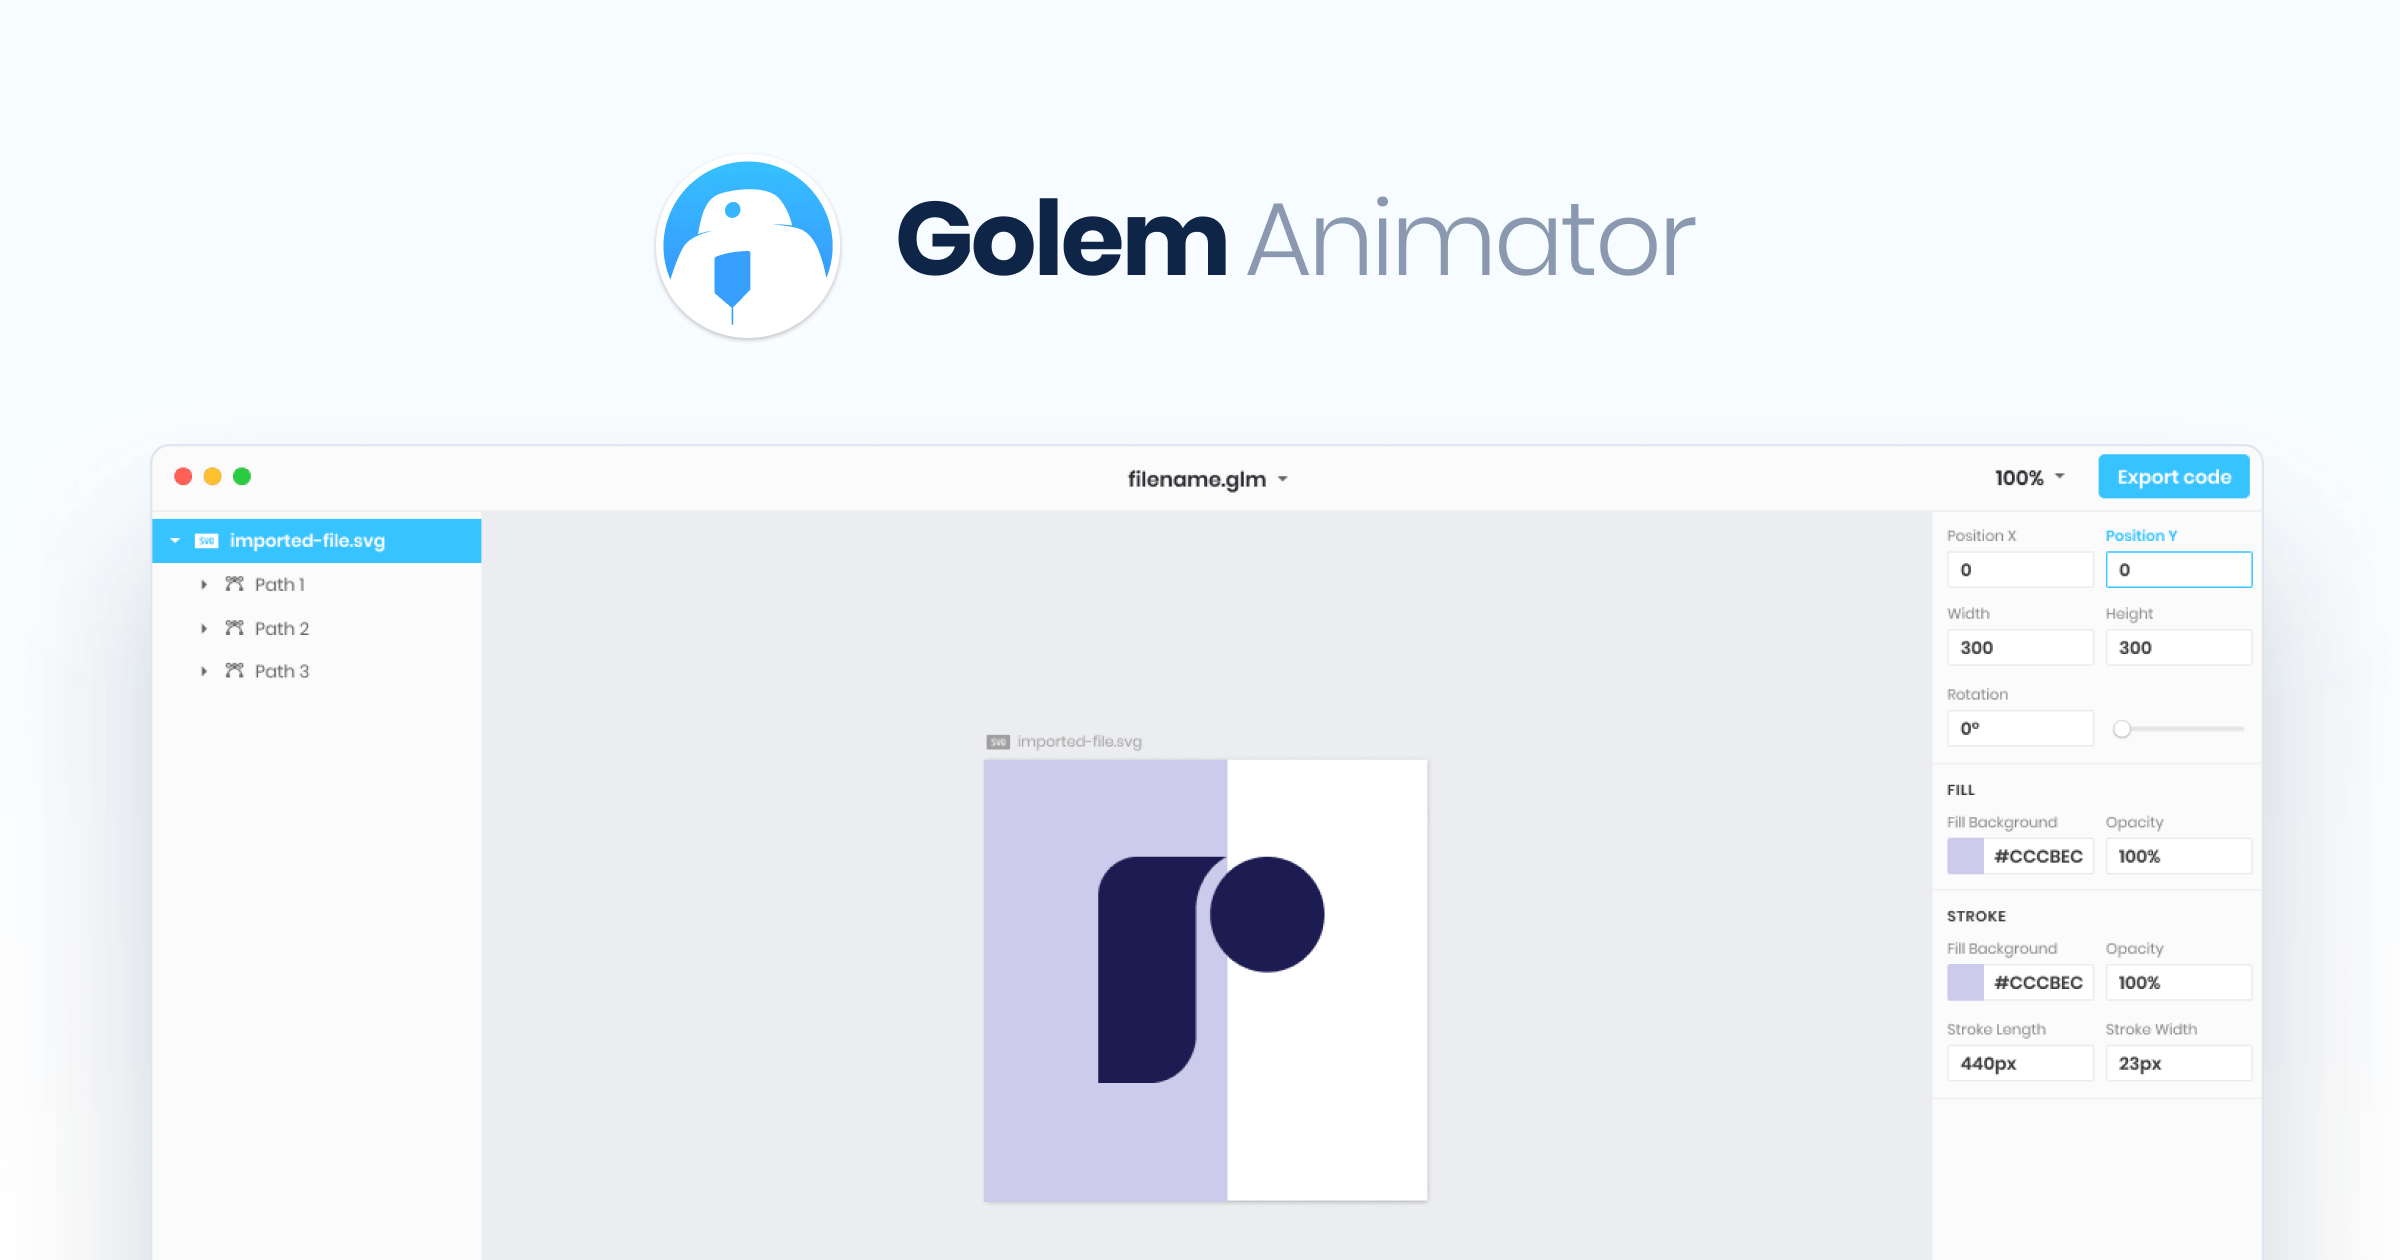 Golem Animator Raw Studio